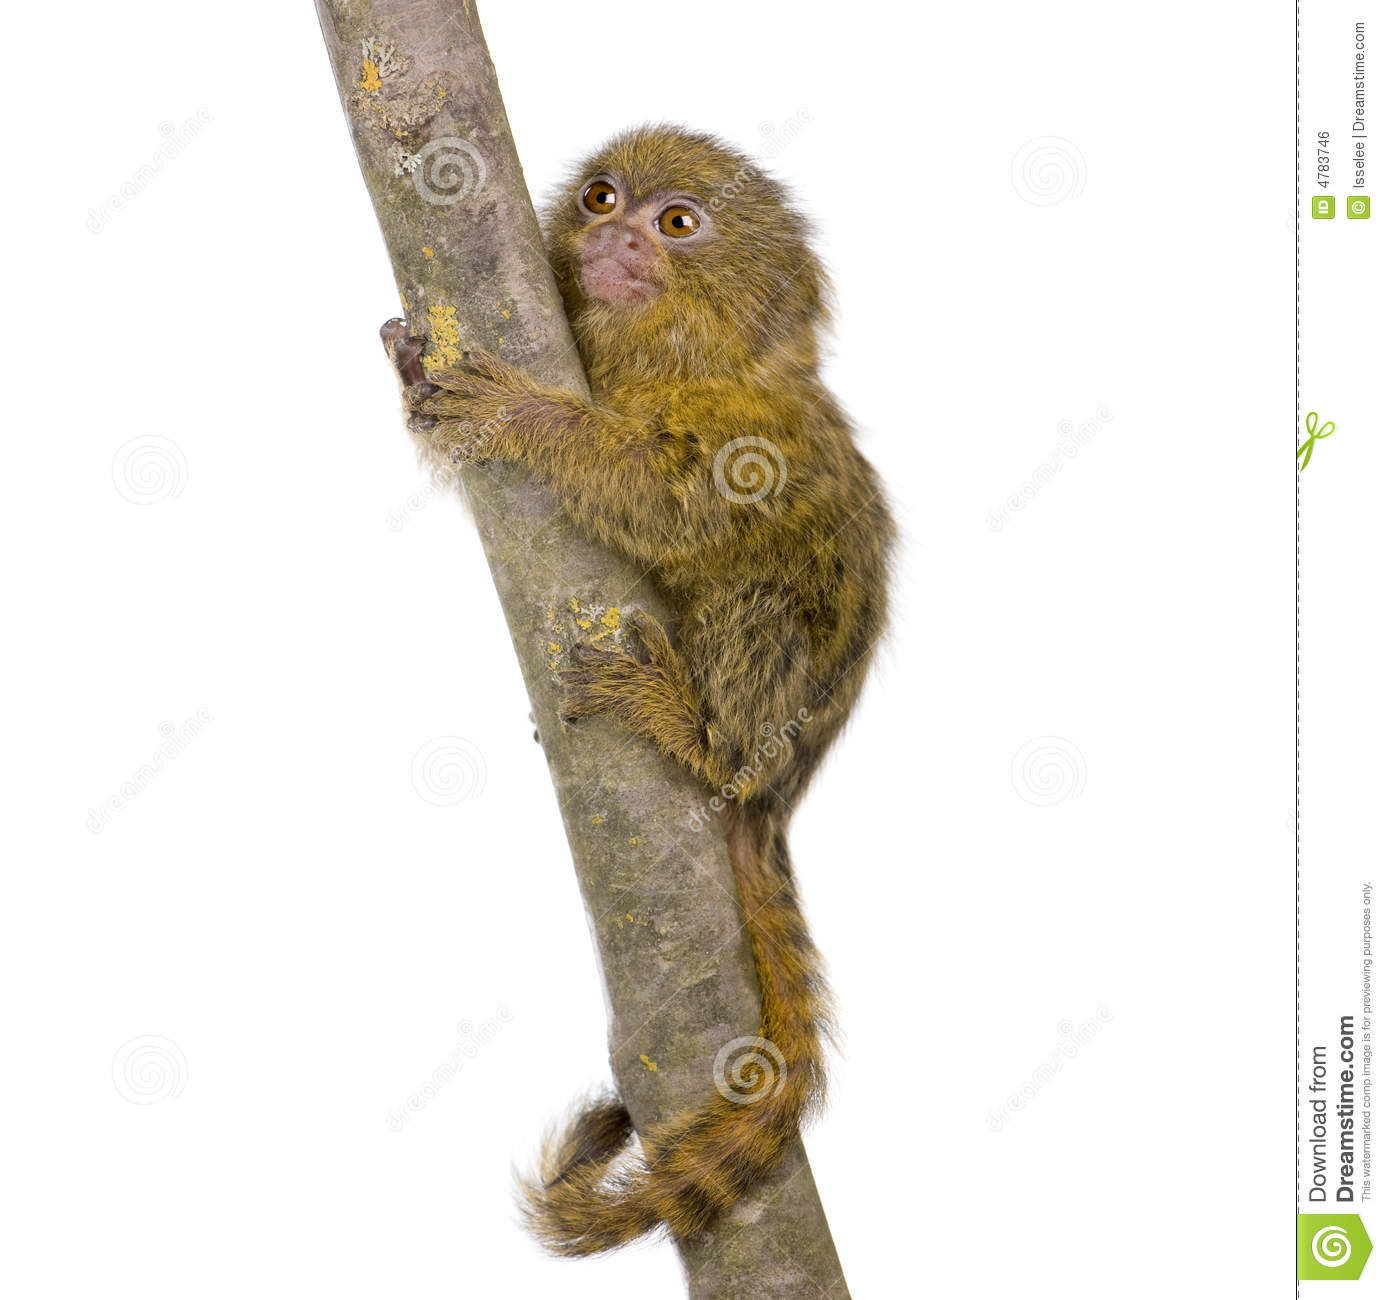 Pygmy Marmoset clipart #2, Download drawings